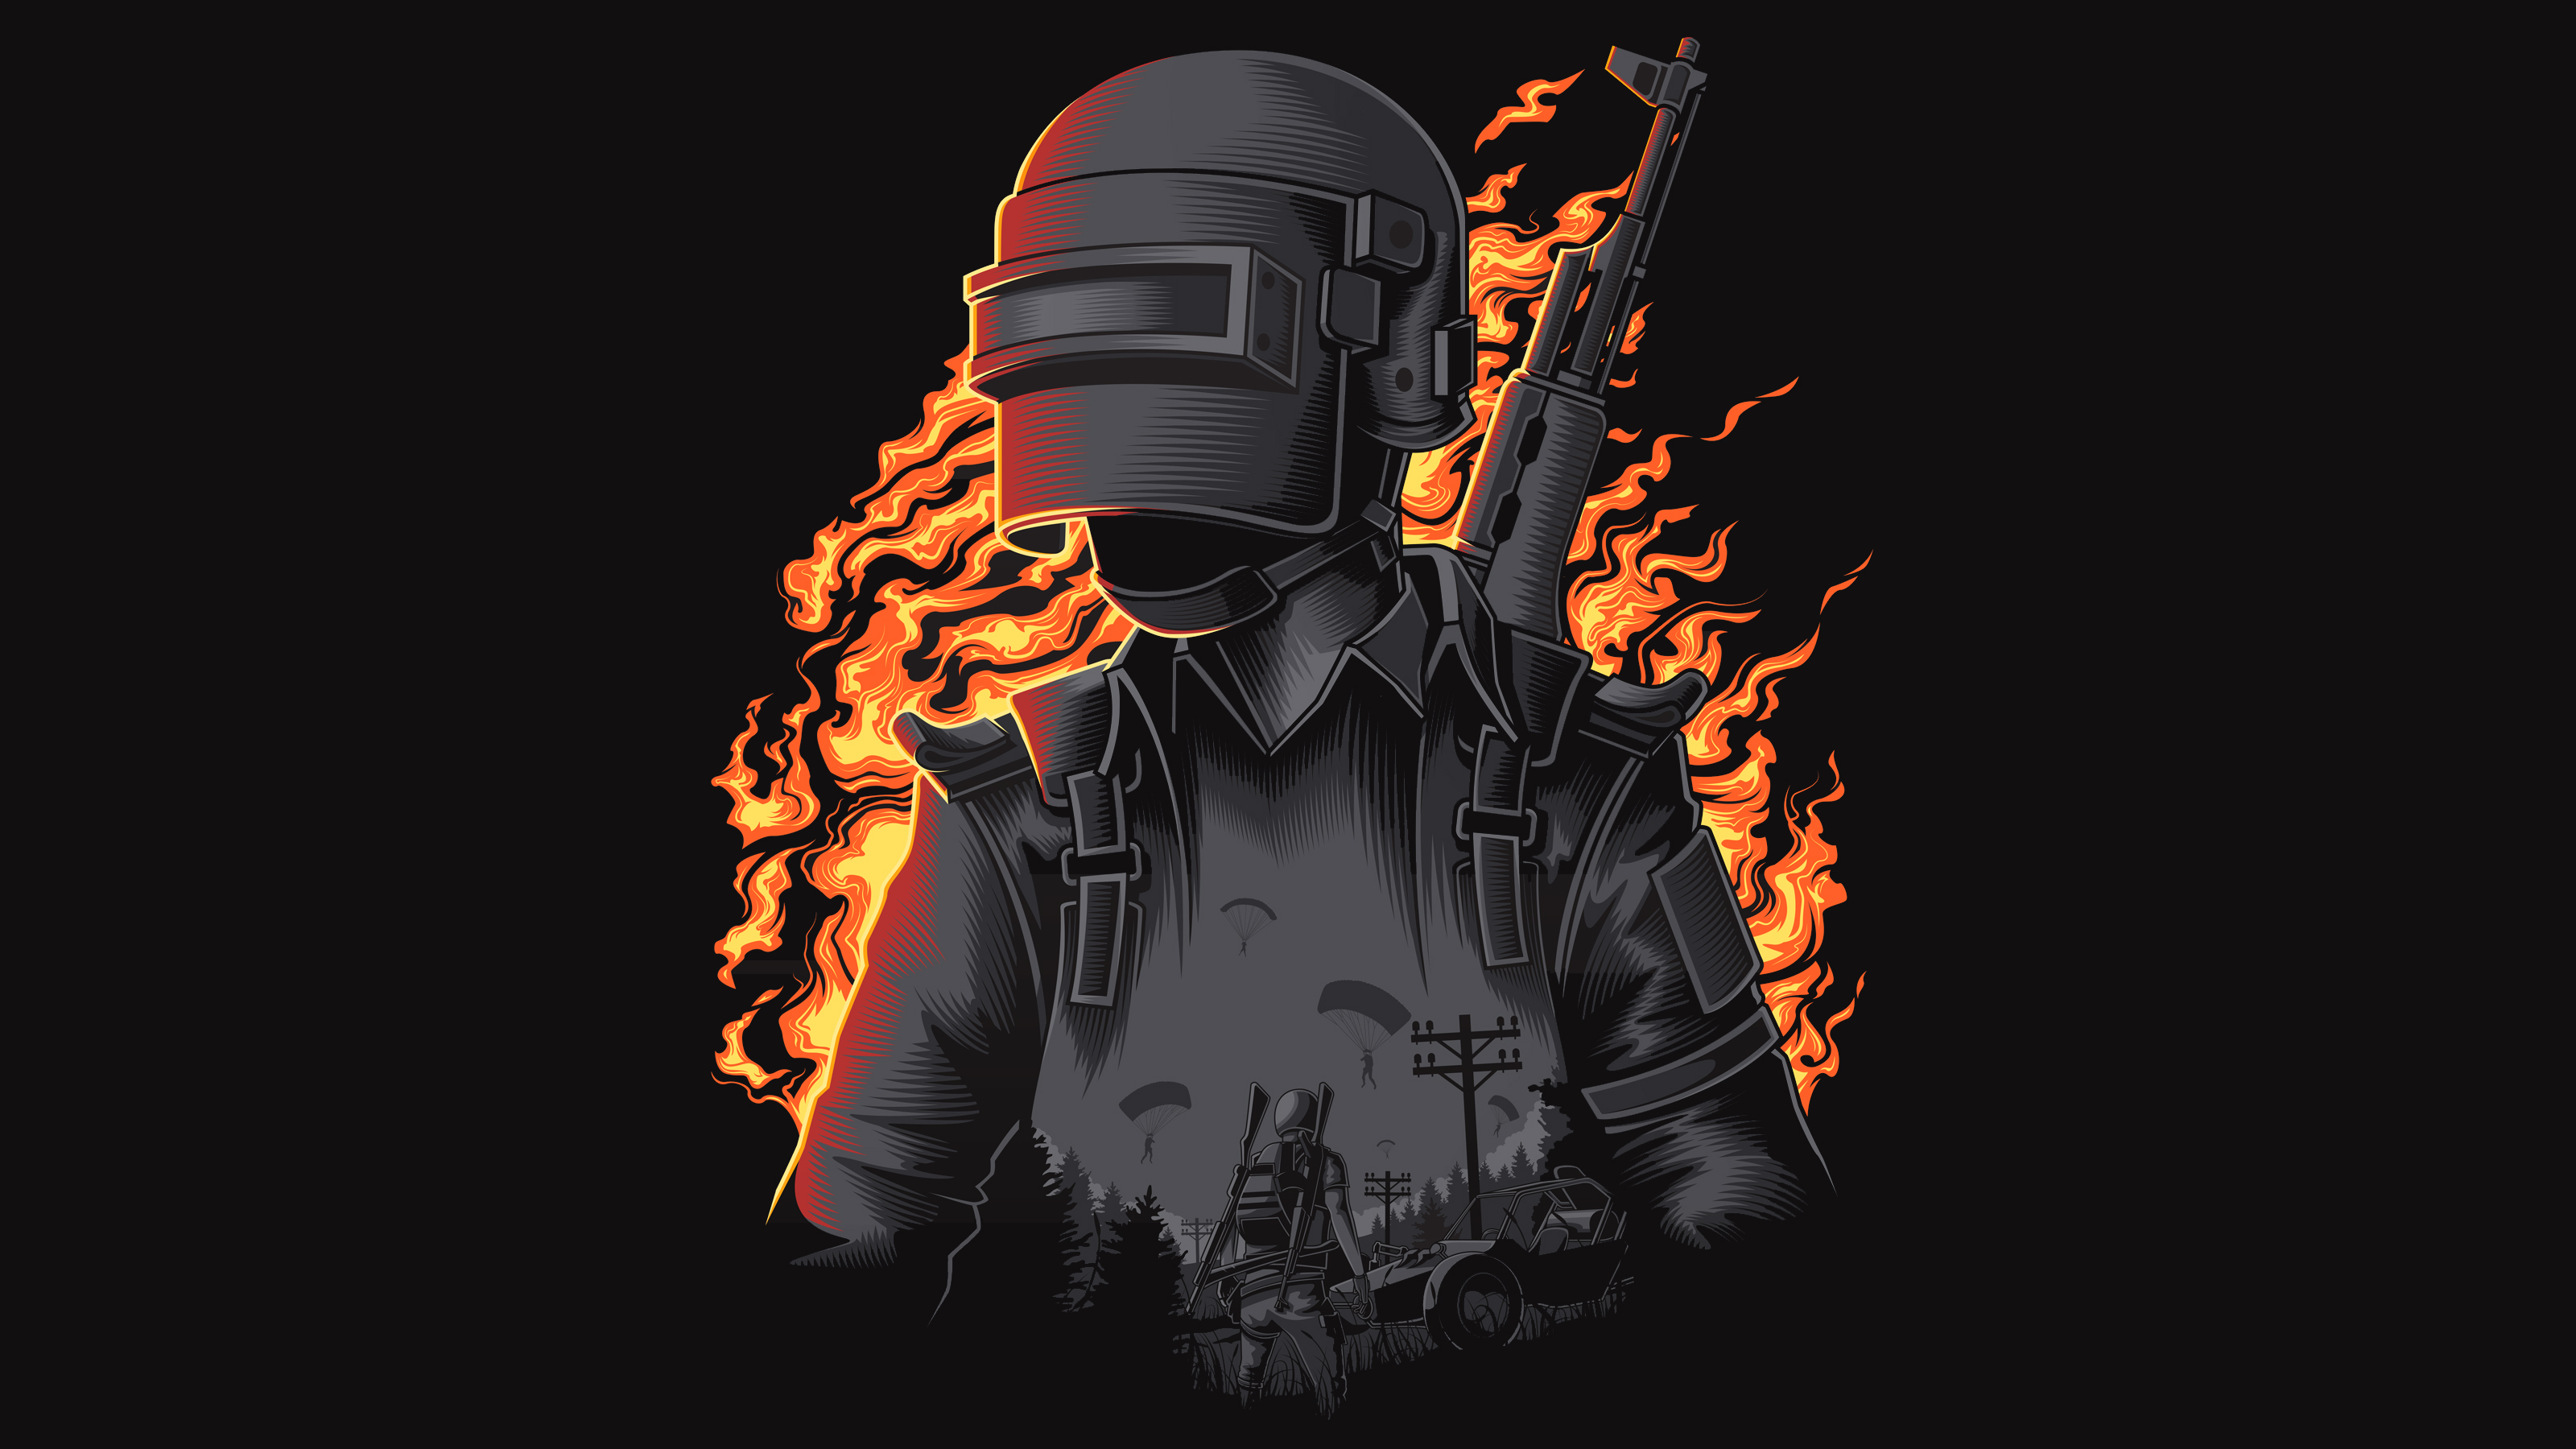 PUBG Dark Illustration Wallpapers